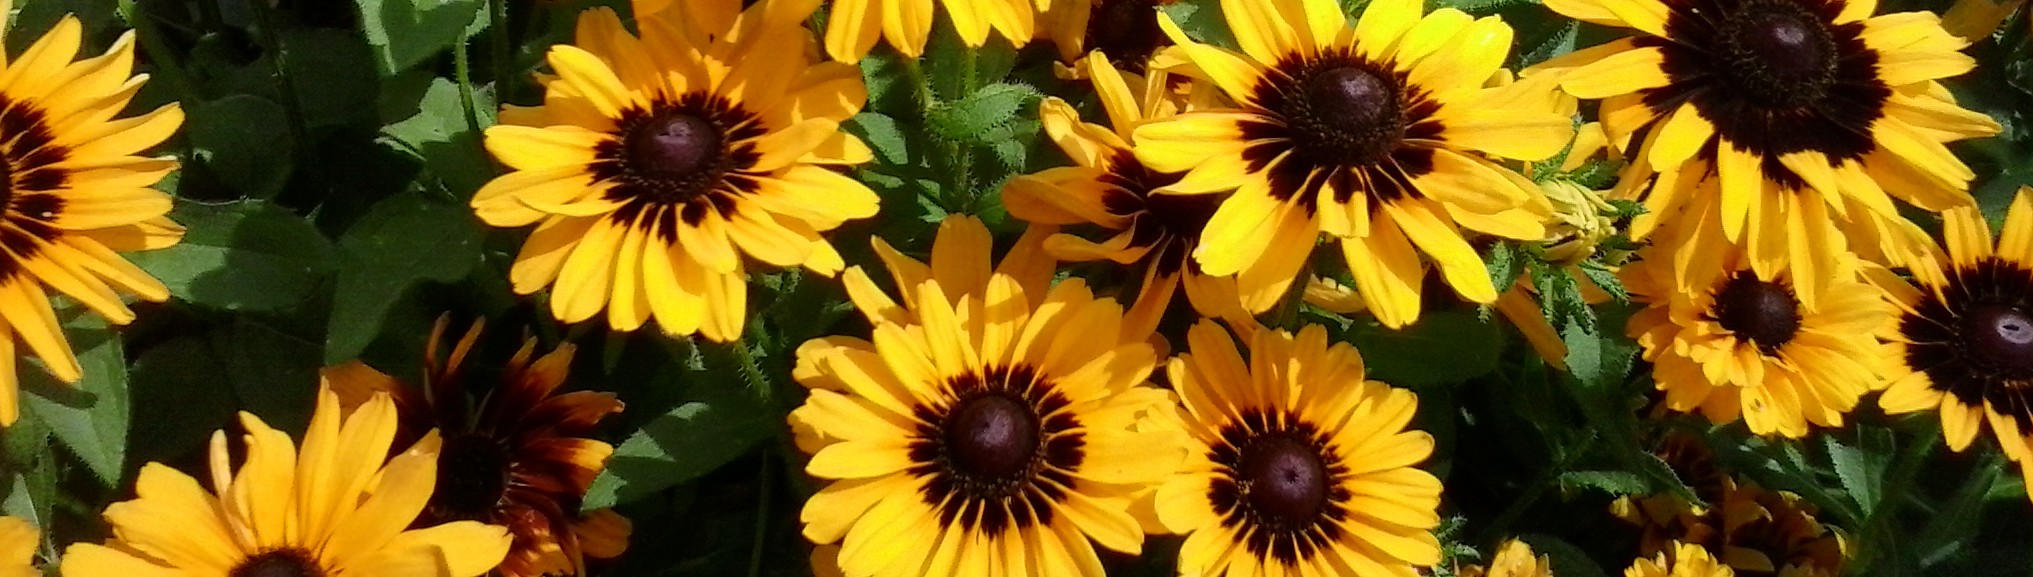 Sunny flowers to cheer you up